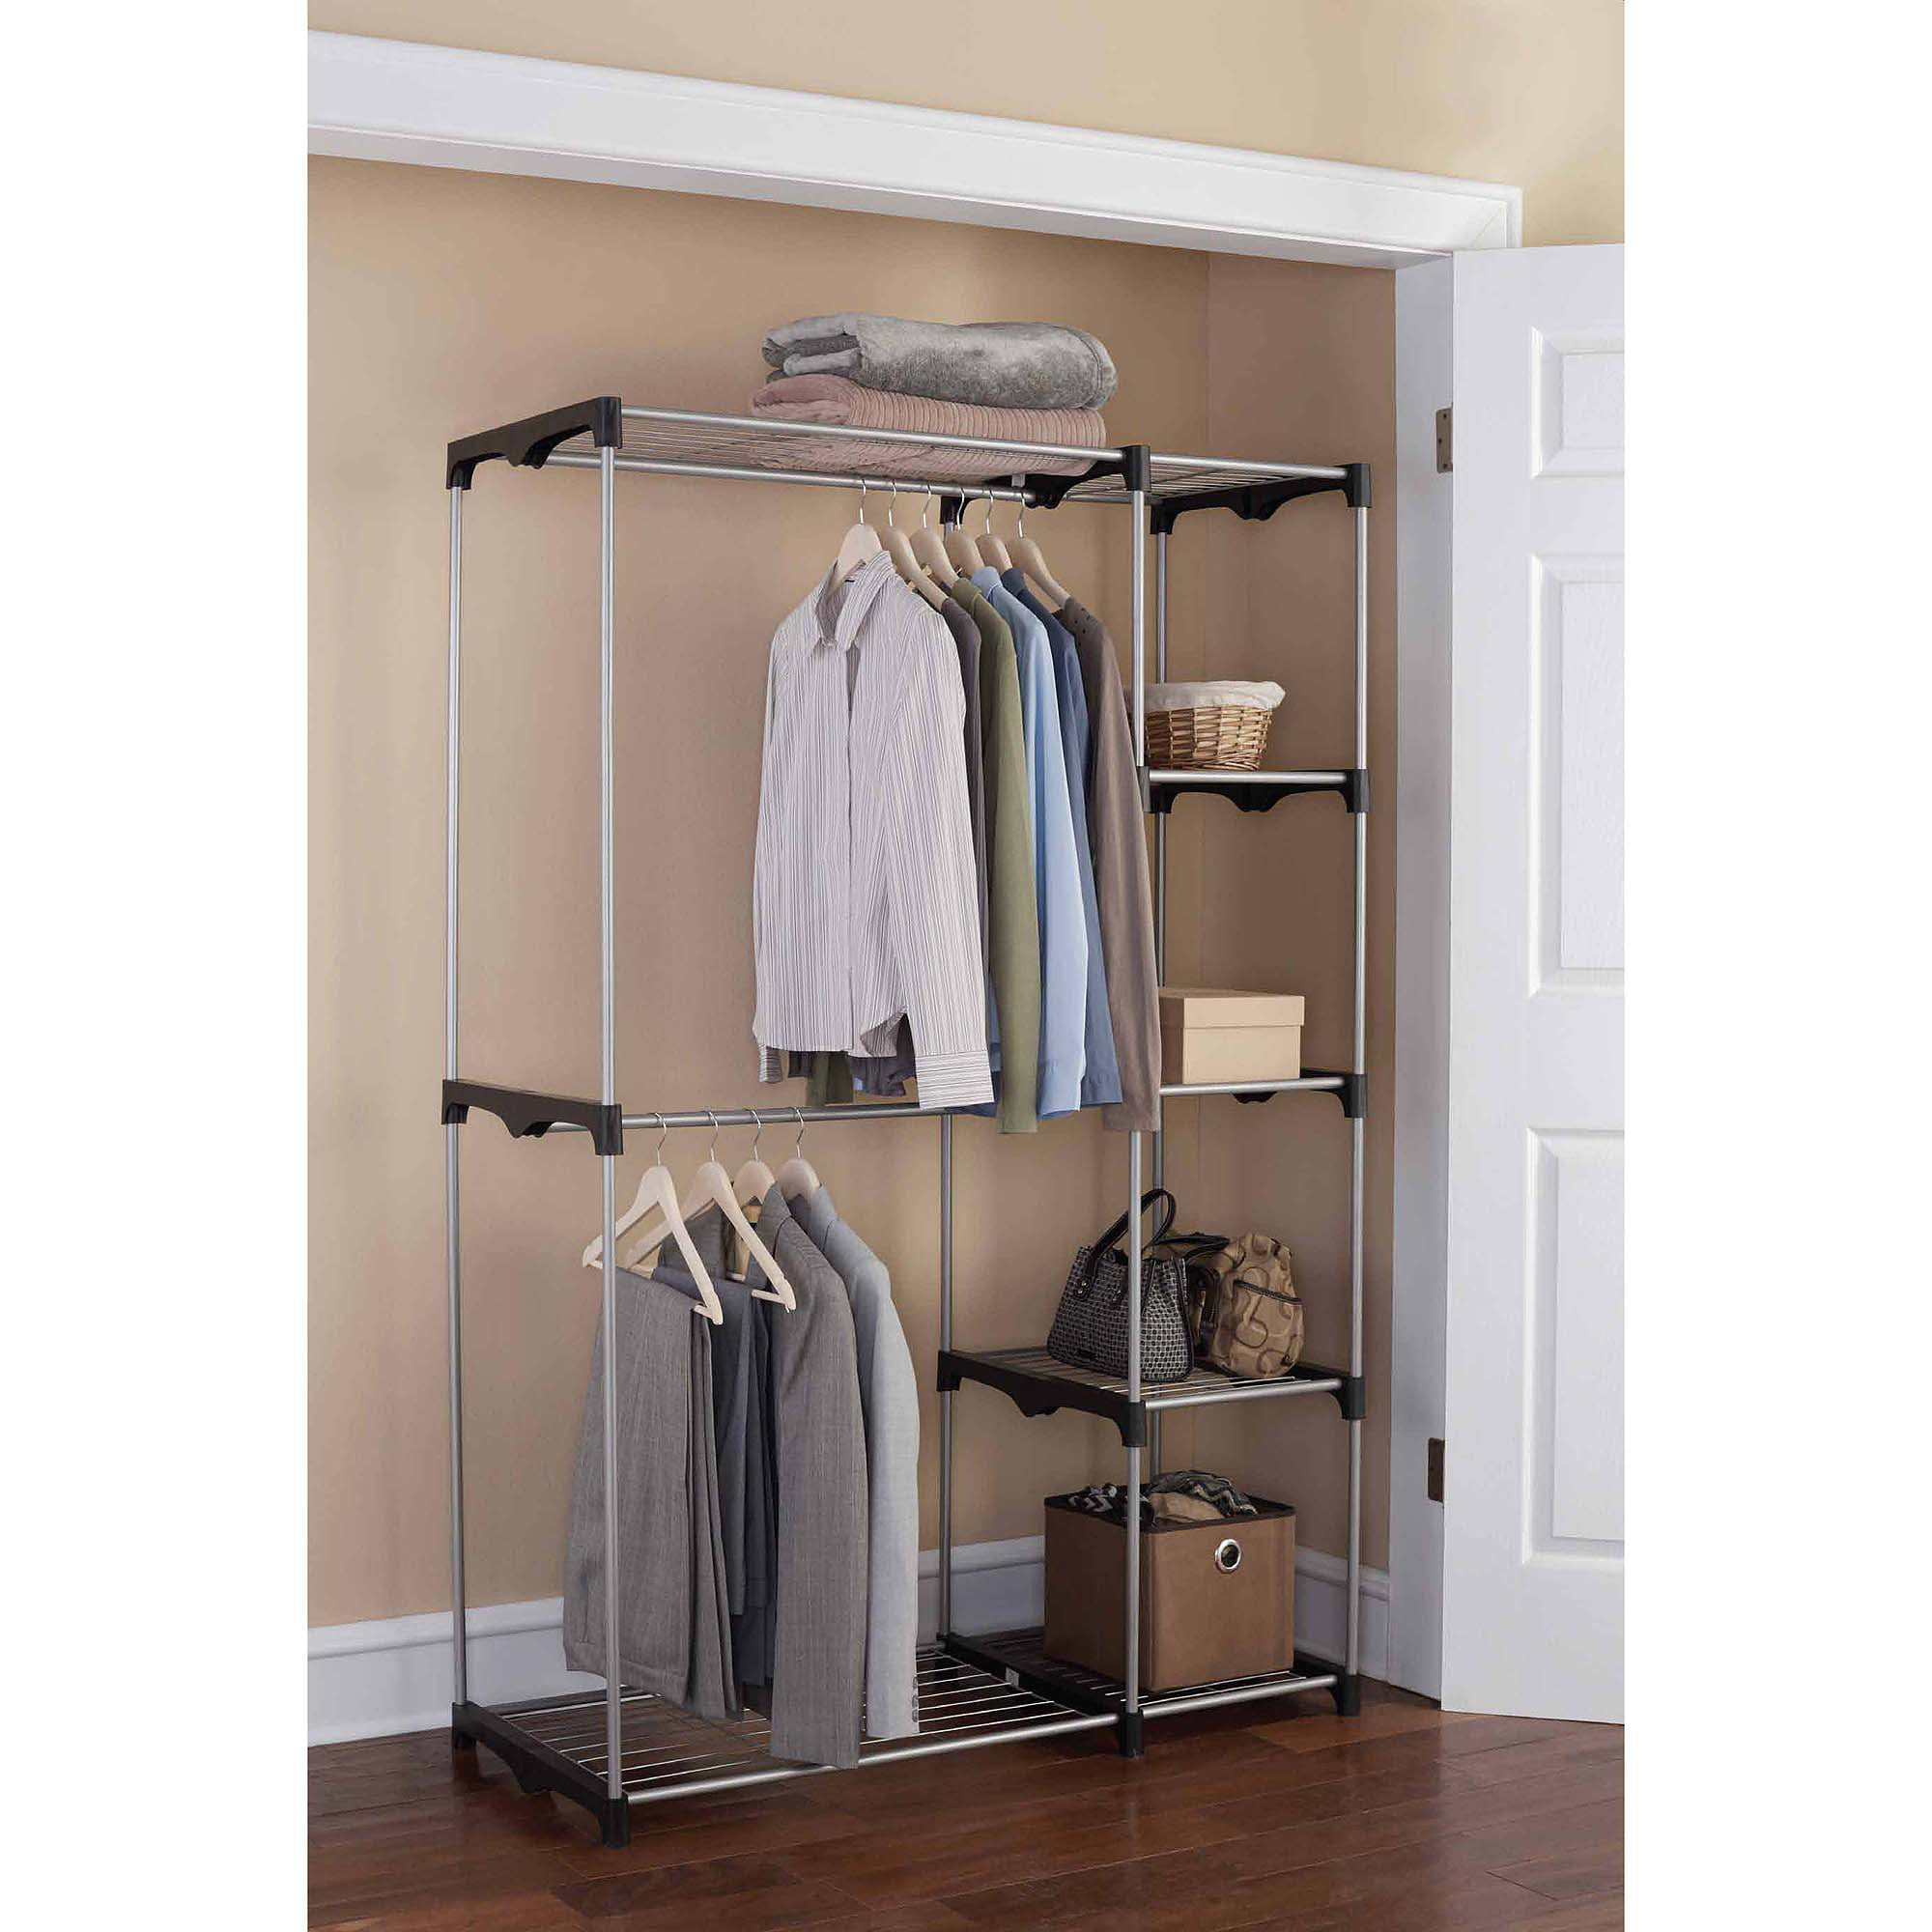 Mainstays Wire Shelf Closet Organizer Black Silver